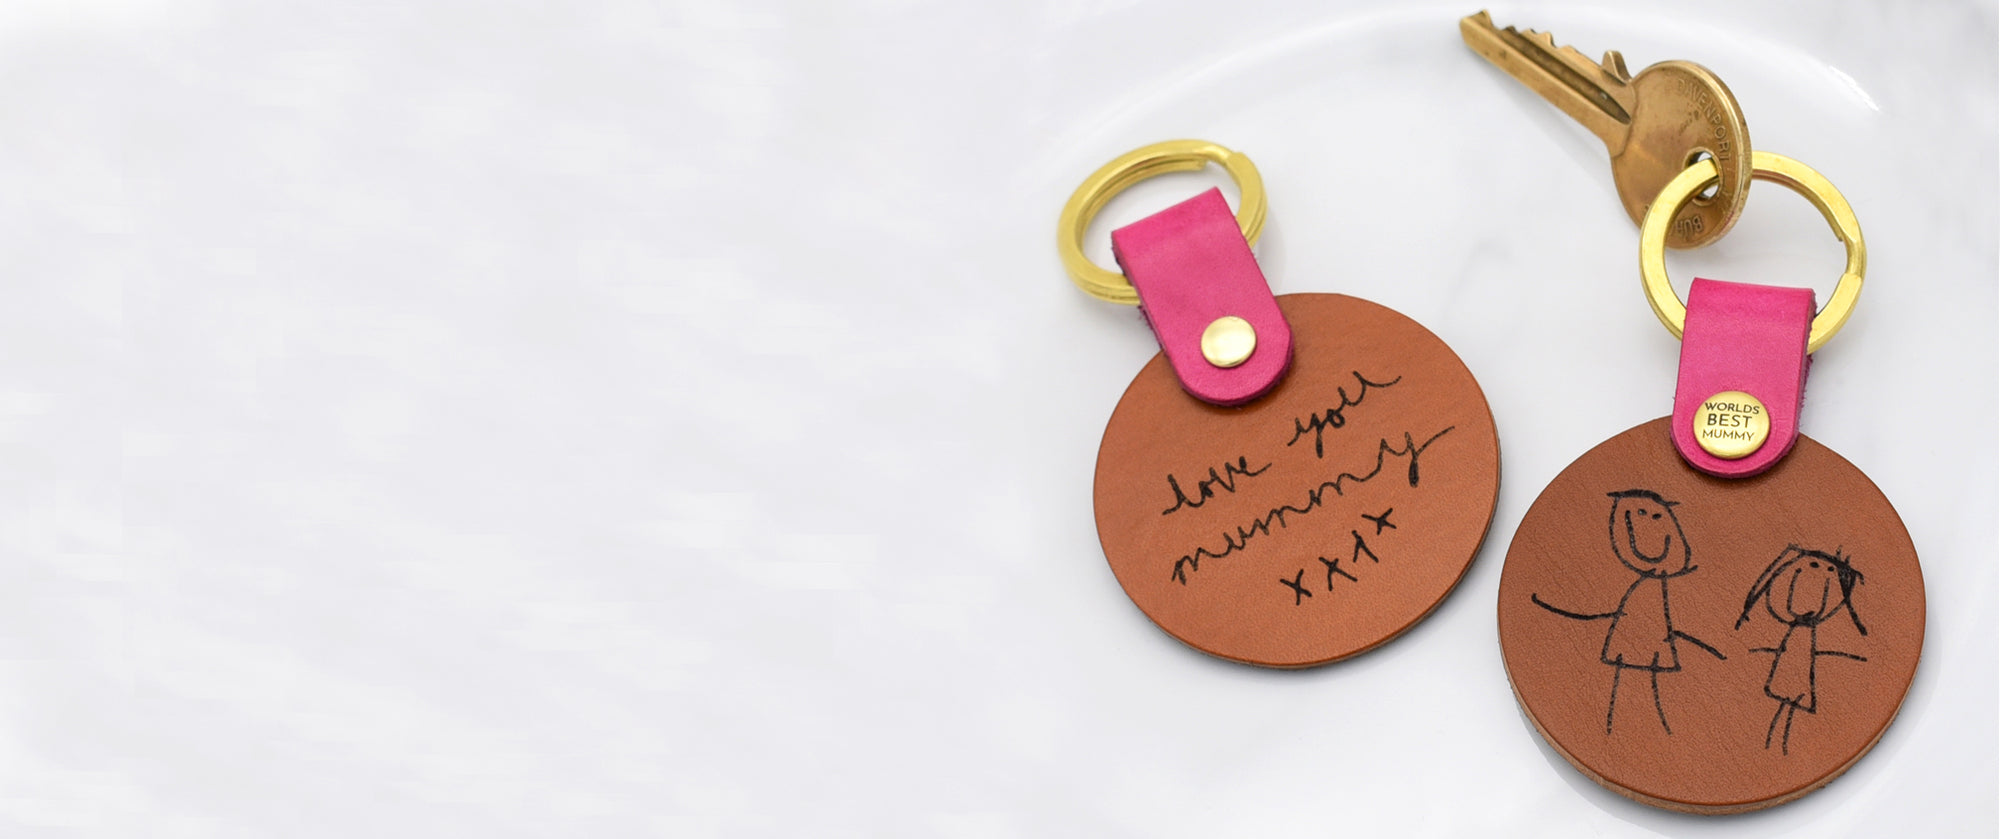 personalised keyrings | personalised gifts